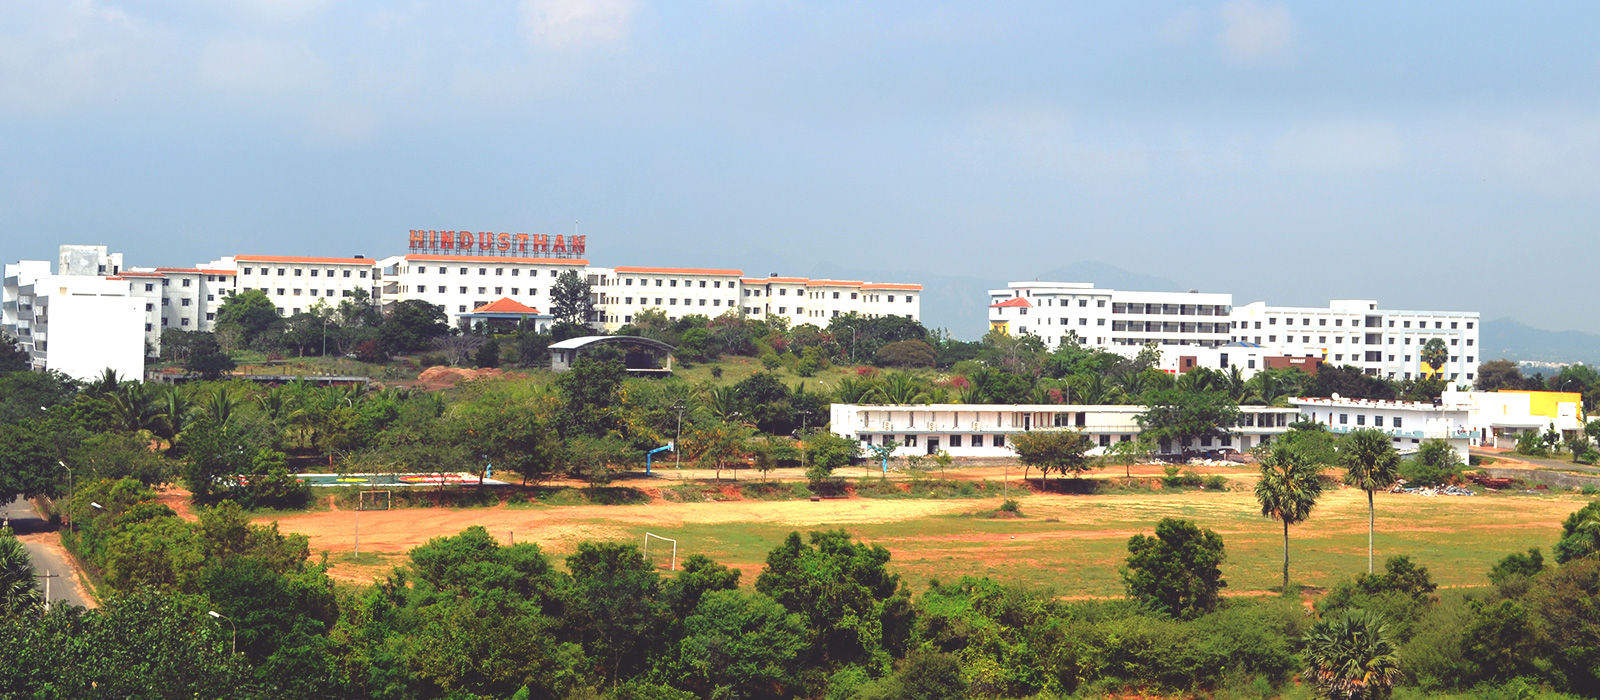 Hindusthan College of Engineering and Technology - [HCET], Coimbatore